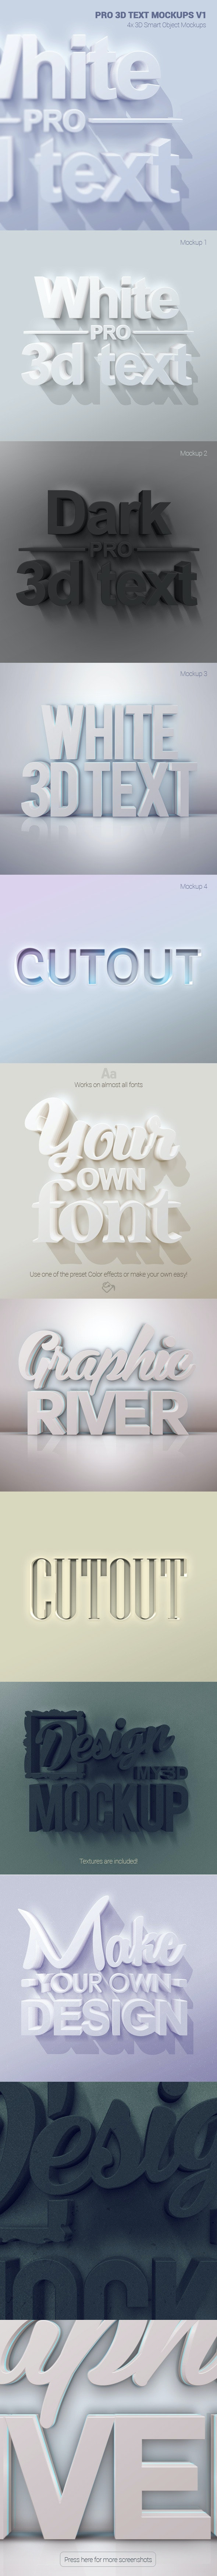 Pro 3D Text Mockups V1 - Text Effects Actions